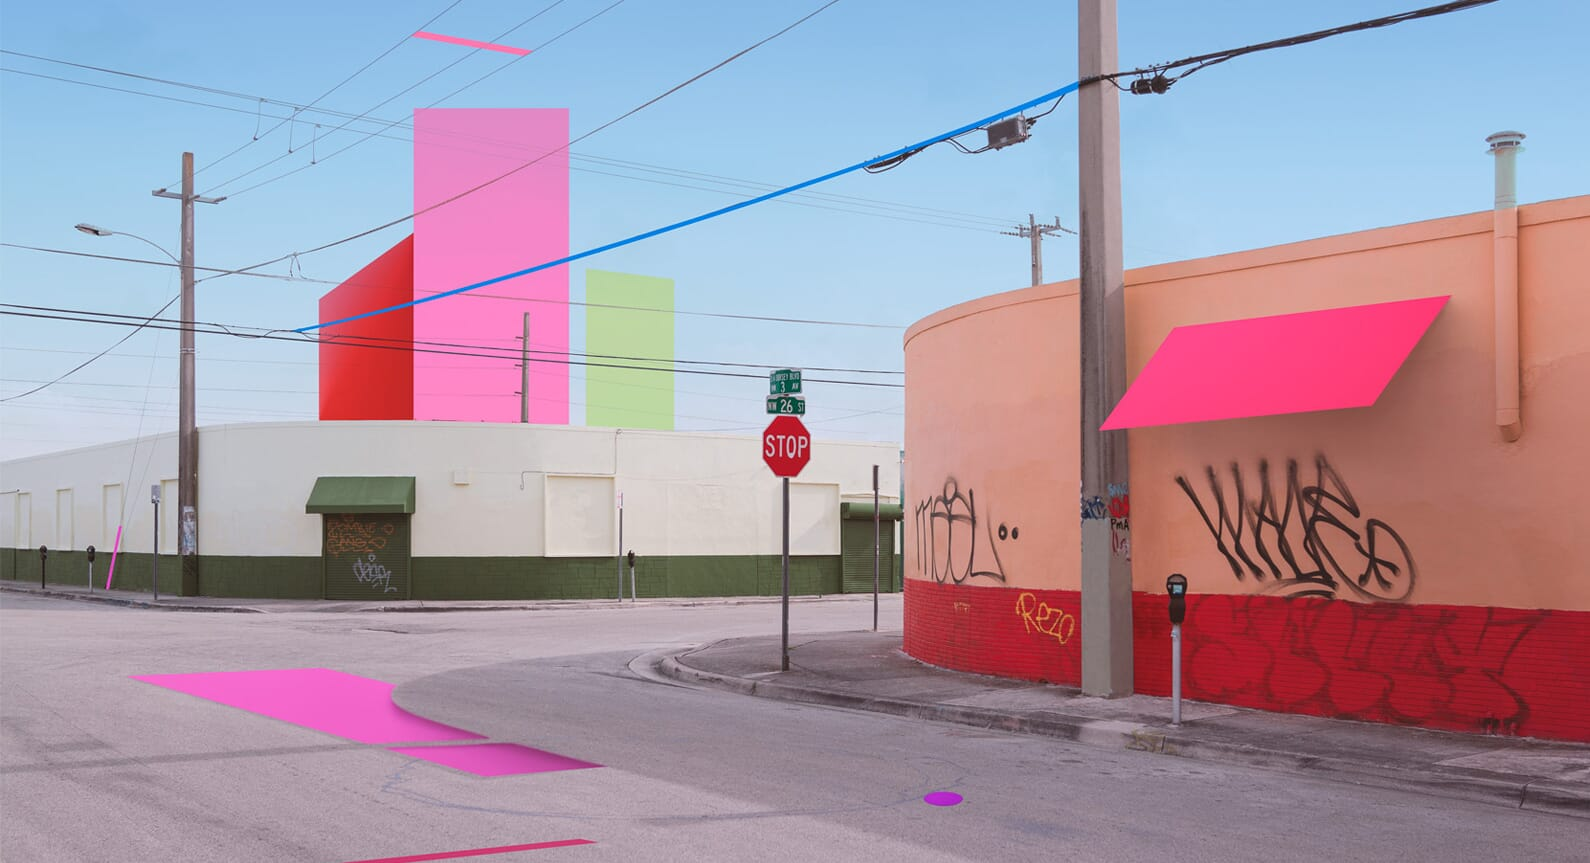 Get Lost In The 'Constructed' Neon Dreamscapes Of Pawel Nolbert